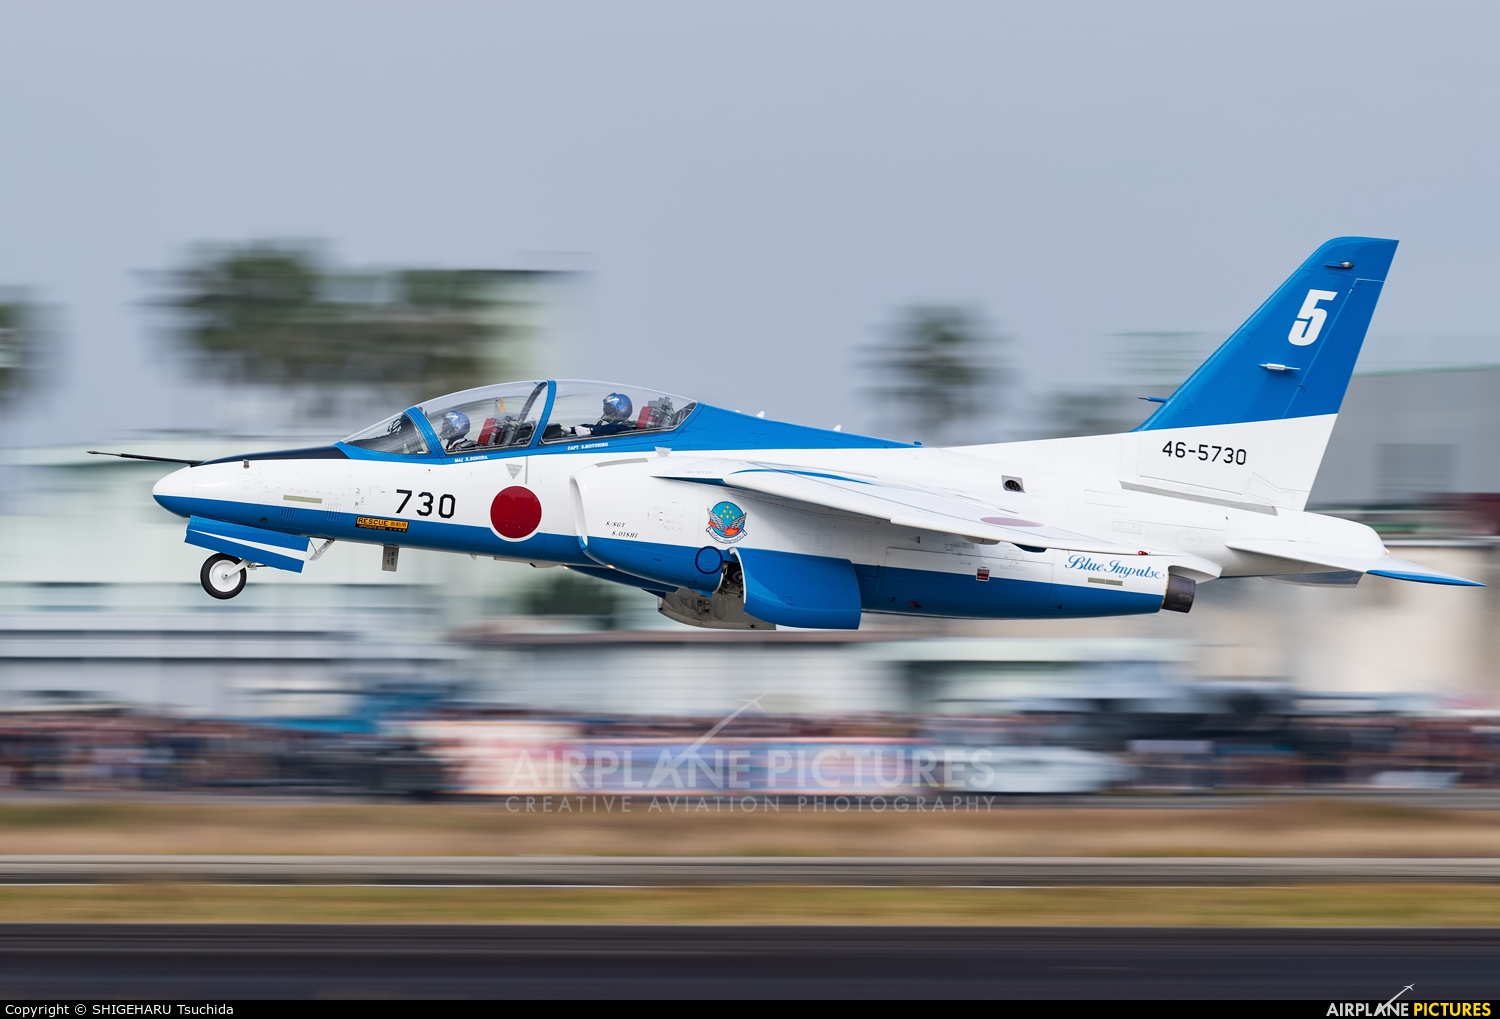 Japan - ASDF: Blue Impulse 46-5730 aircraft at Nyutabaru AB